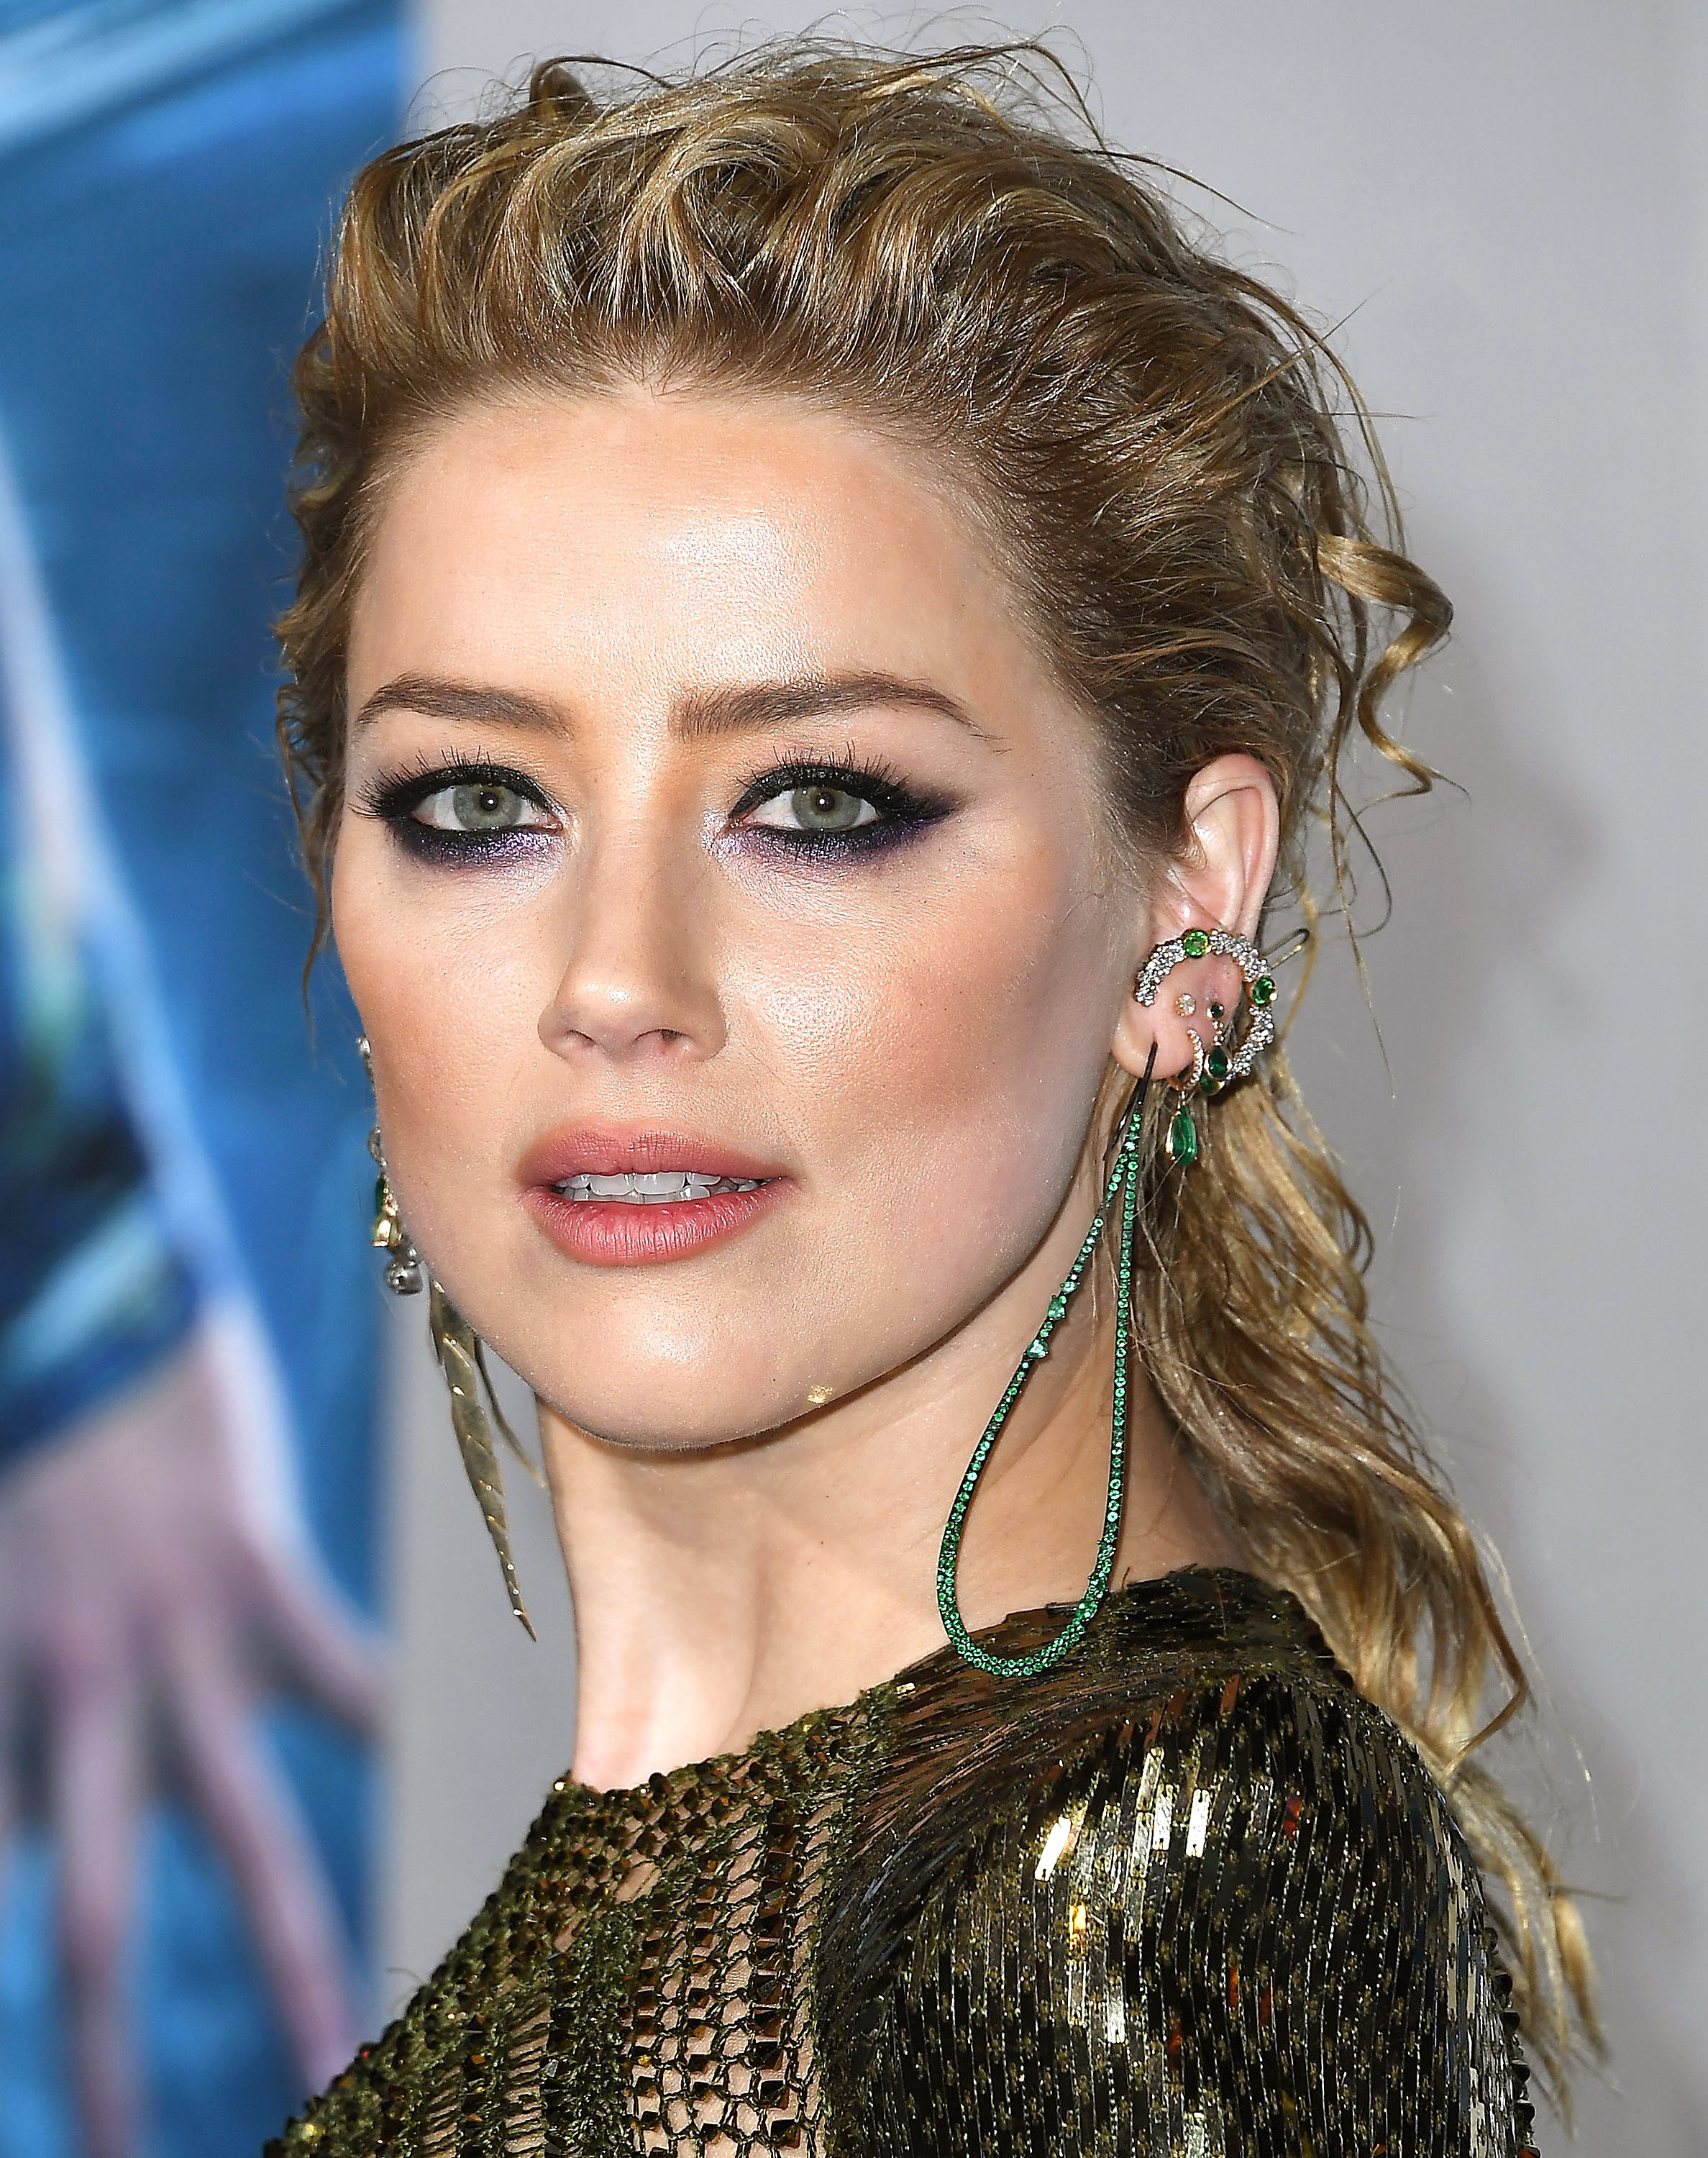 """Amber-Heard-aquaman-premiere - HOLLYWOOD, CA – DECEMBER 12: Amber Heard arrives at the Premiere Of Warner Bros. Pictures' """"Aquaman"""" at TCL Chinese Theatre on December 12, 2018 in Hollywood, California."""